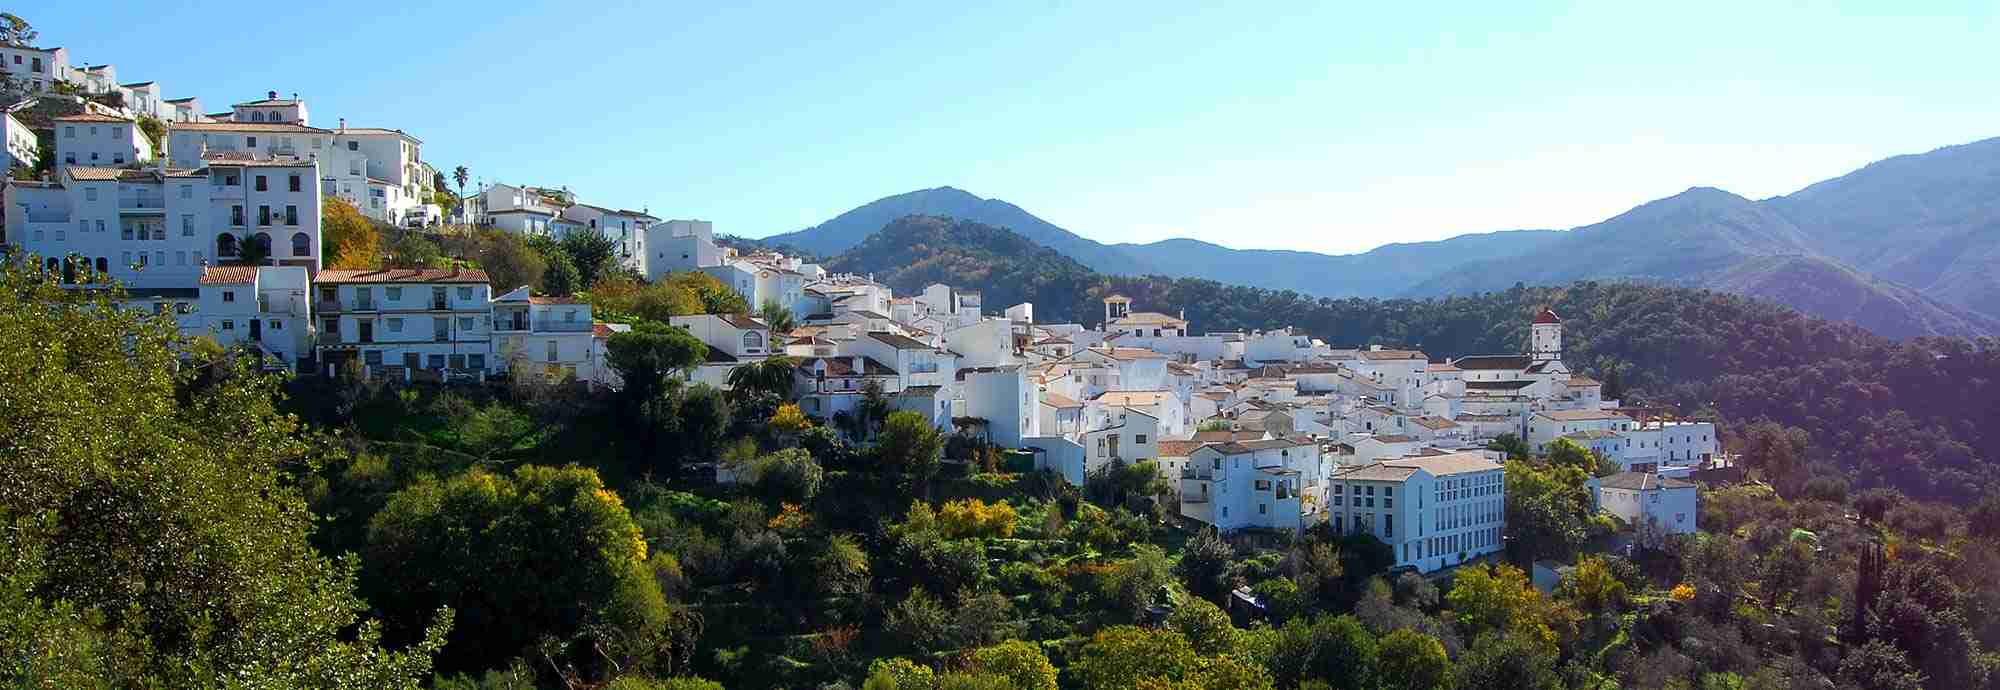 Holiday  Villas in Malaga near the beach